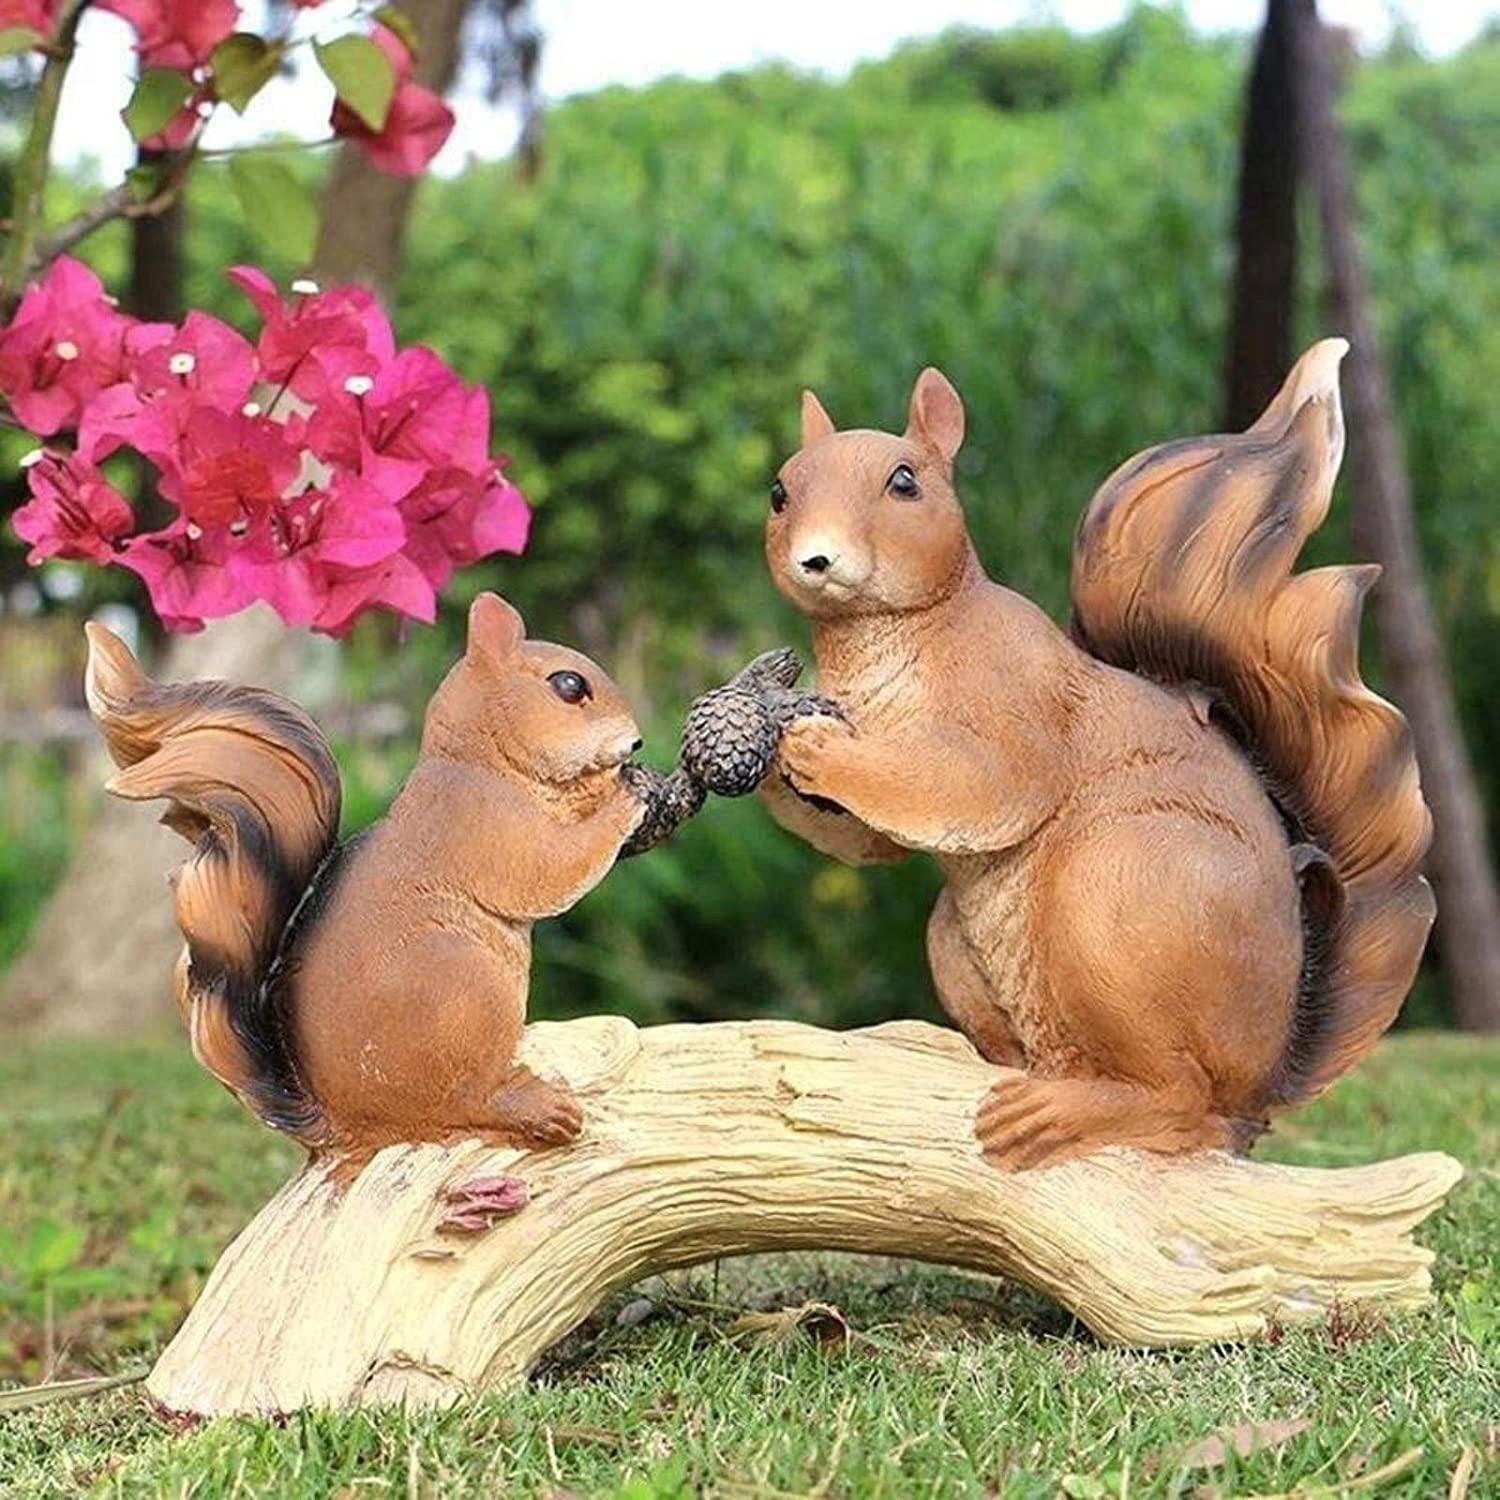 Garden Ornaments Simulate Two Resin Waterproof Squirrels Special Campaign In a popularity